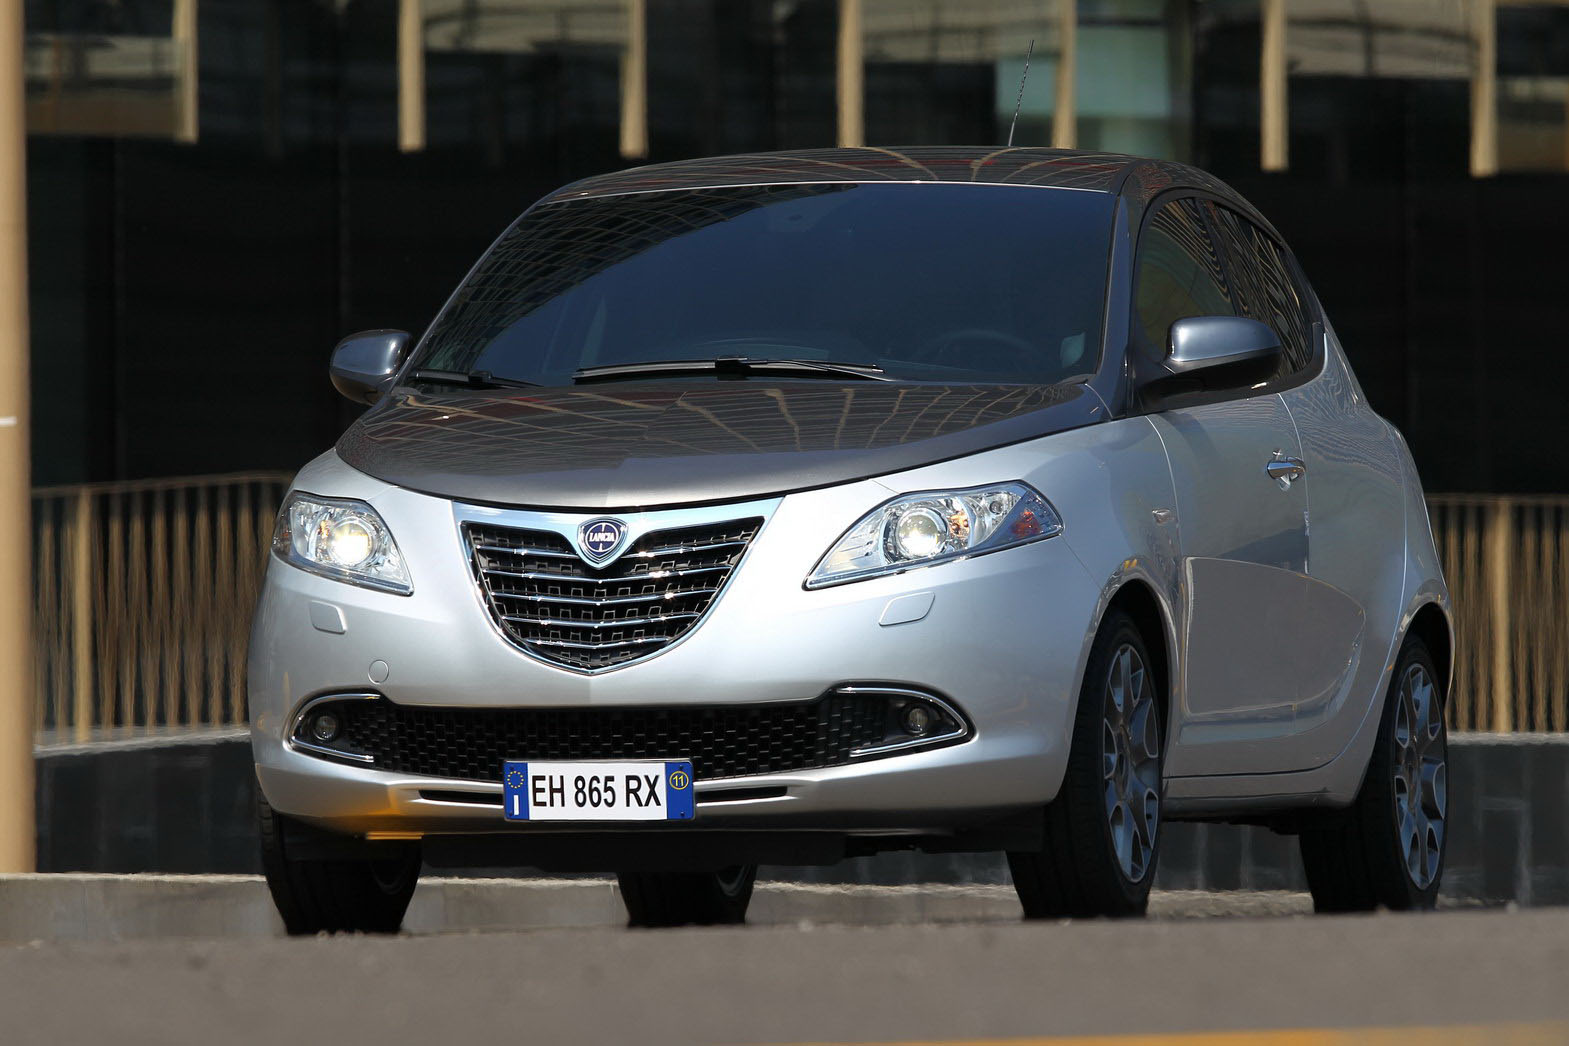 Lancia Ypsilon 48 SMARTY LANCIA 2012 YPSILON GETS CLICKED